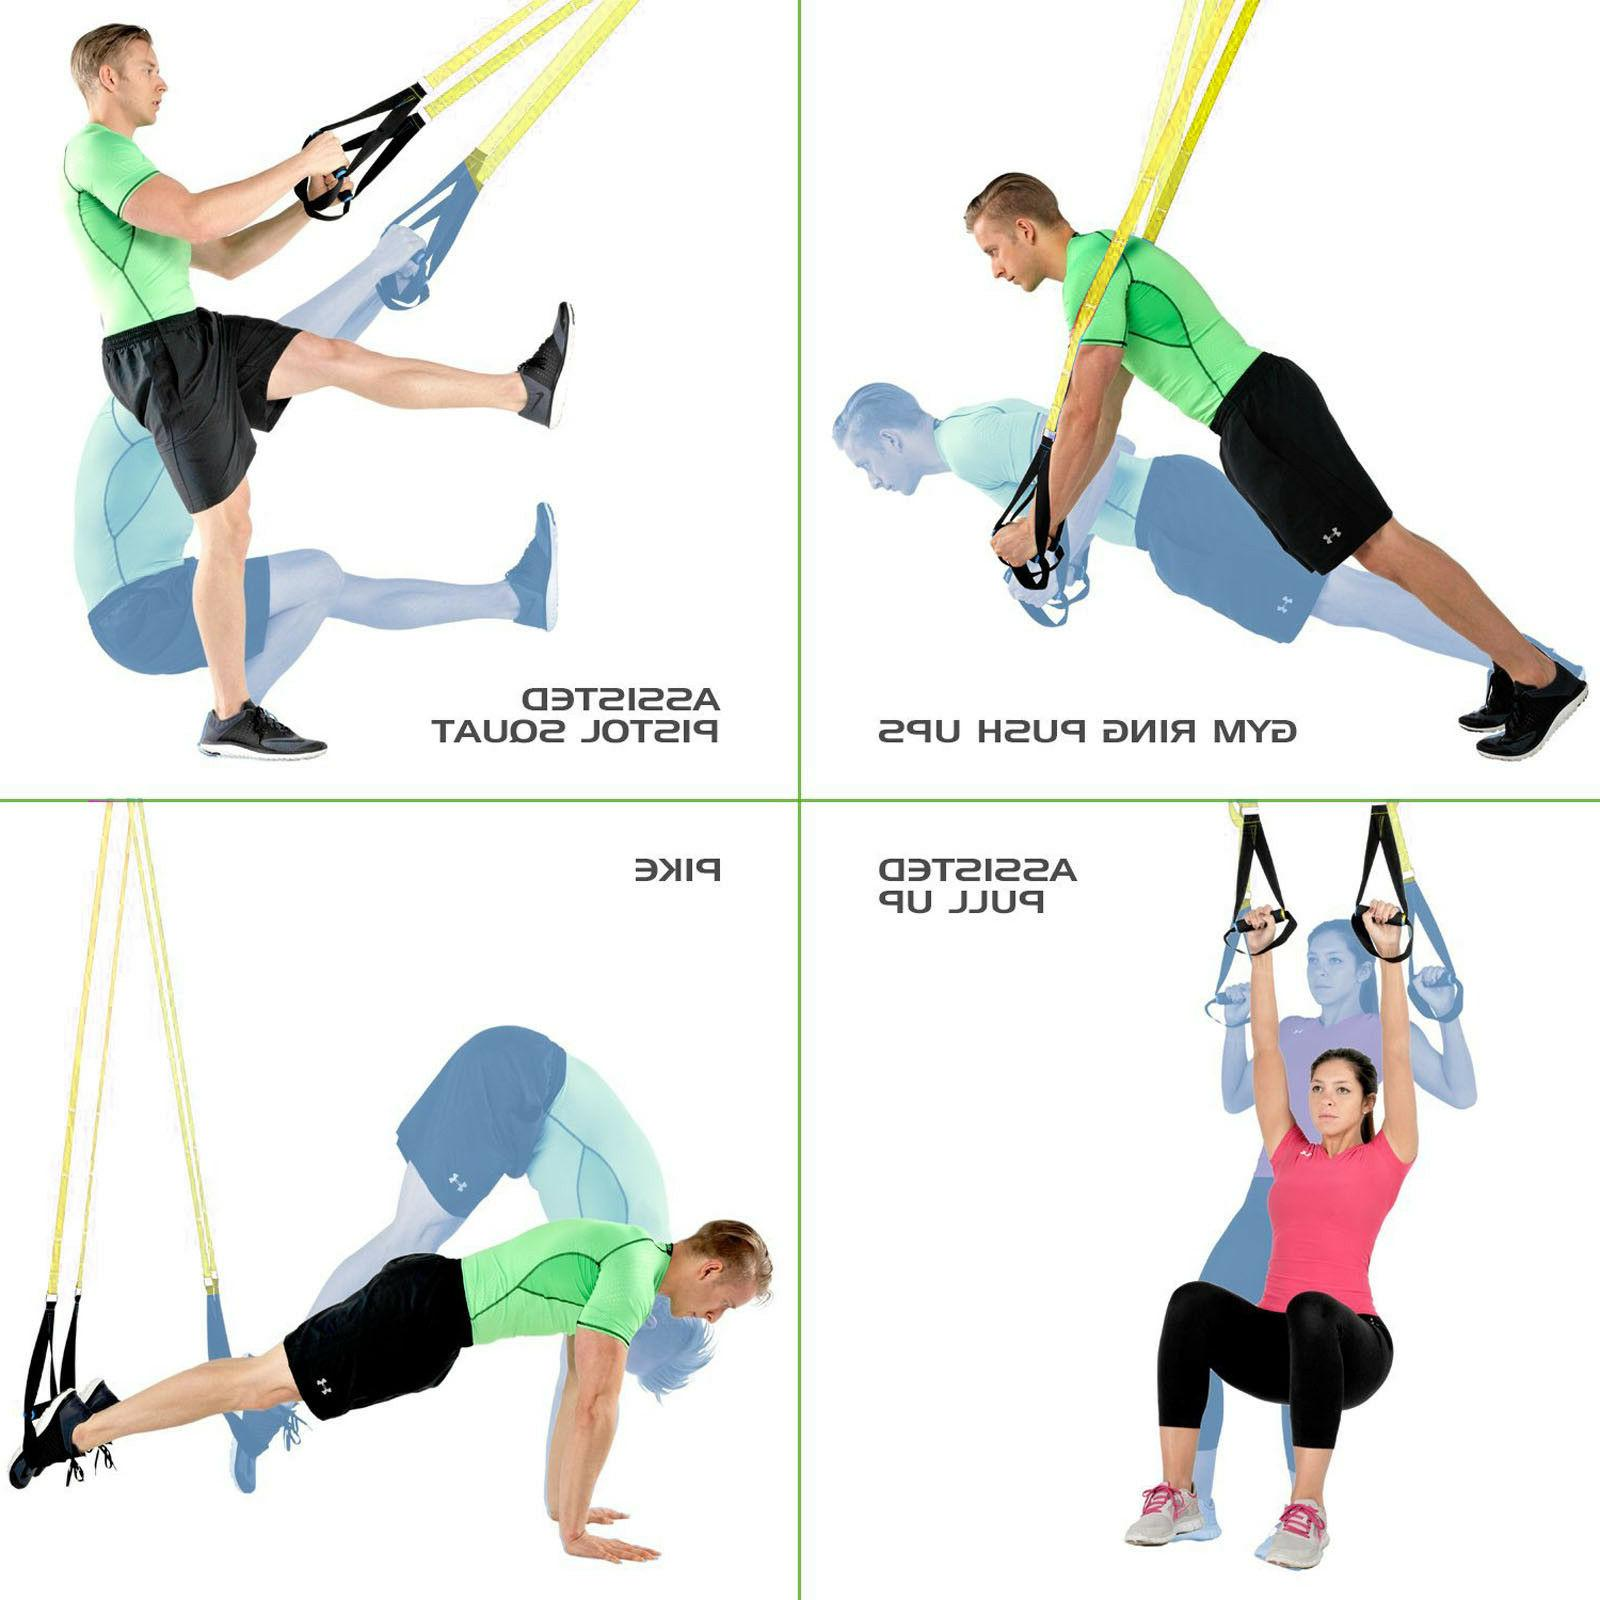 Sports Fitness Resistance Trainer for Full Body Strength,